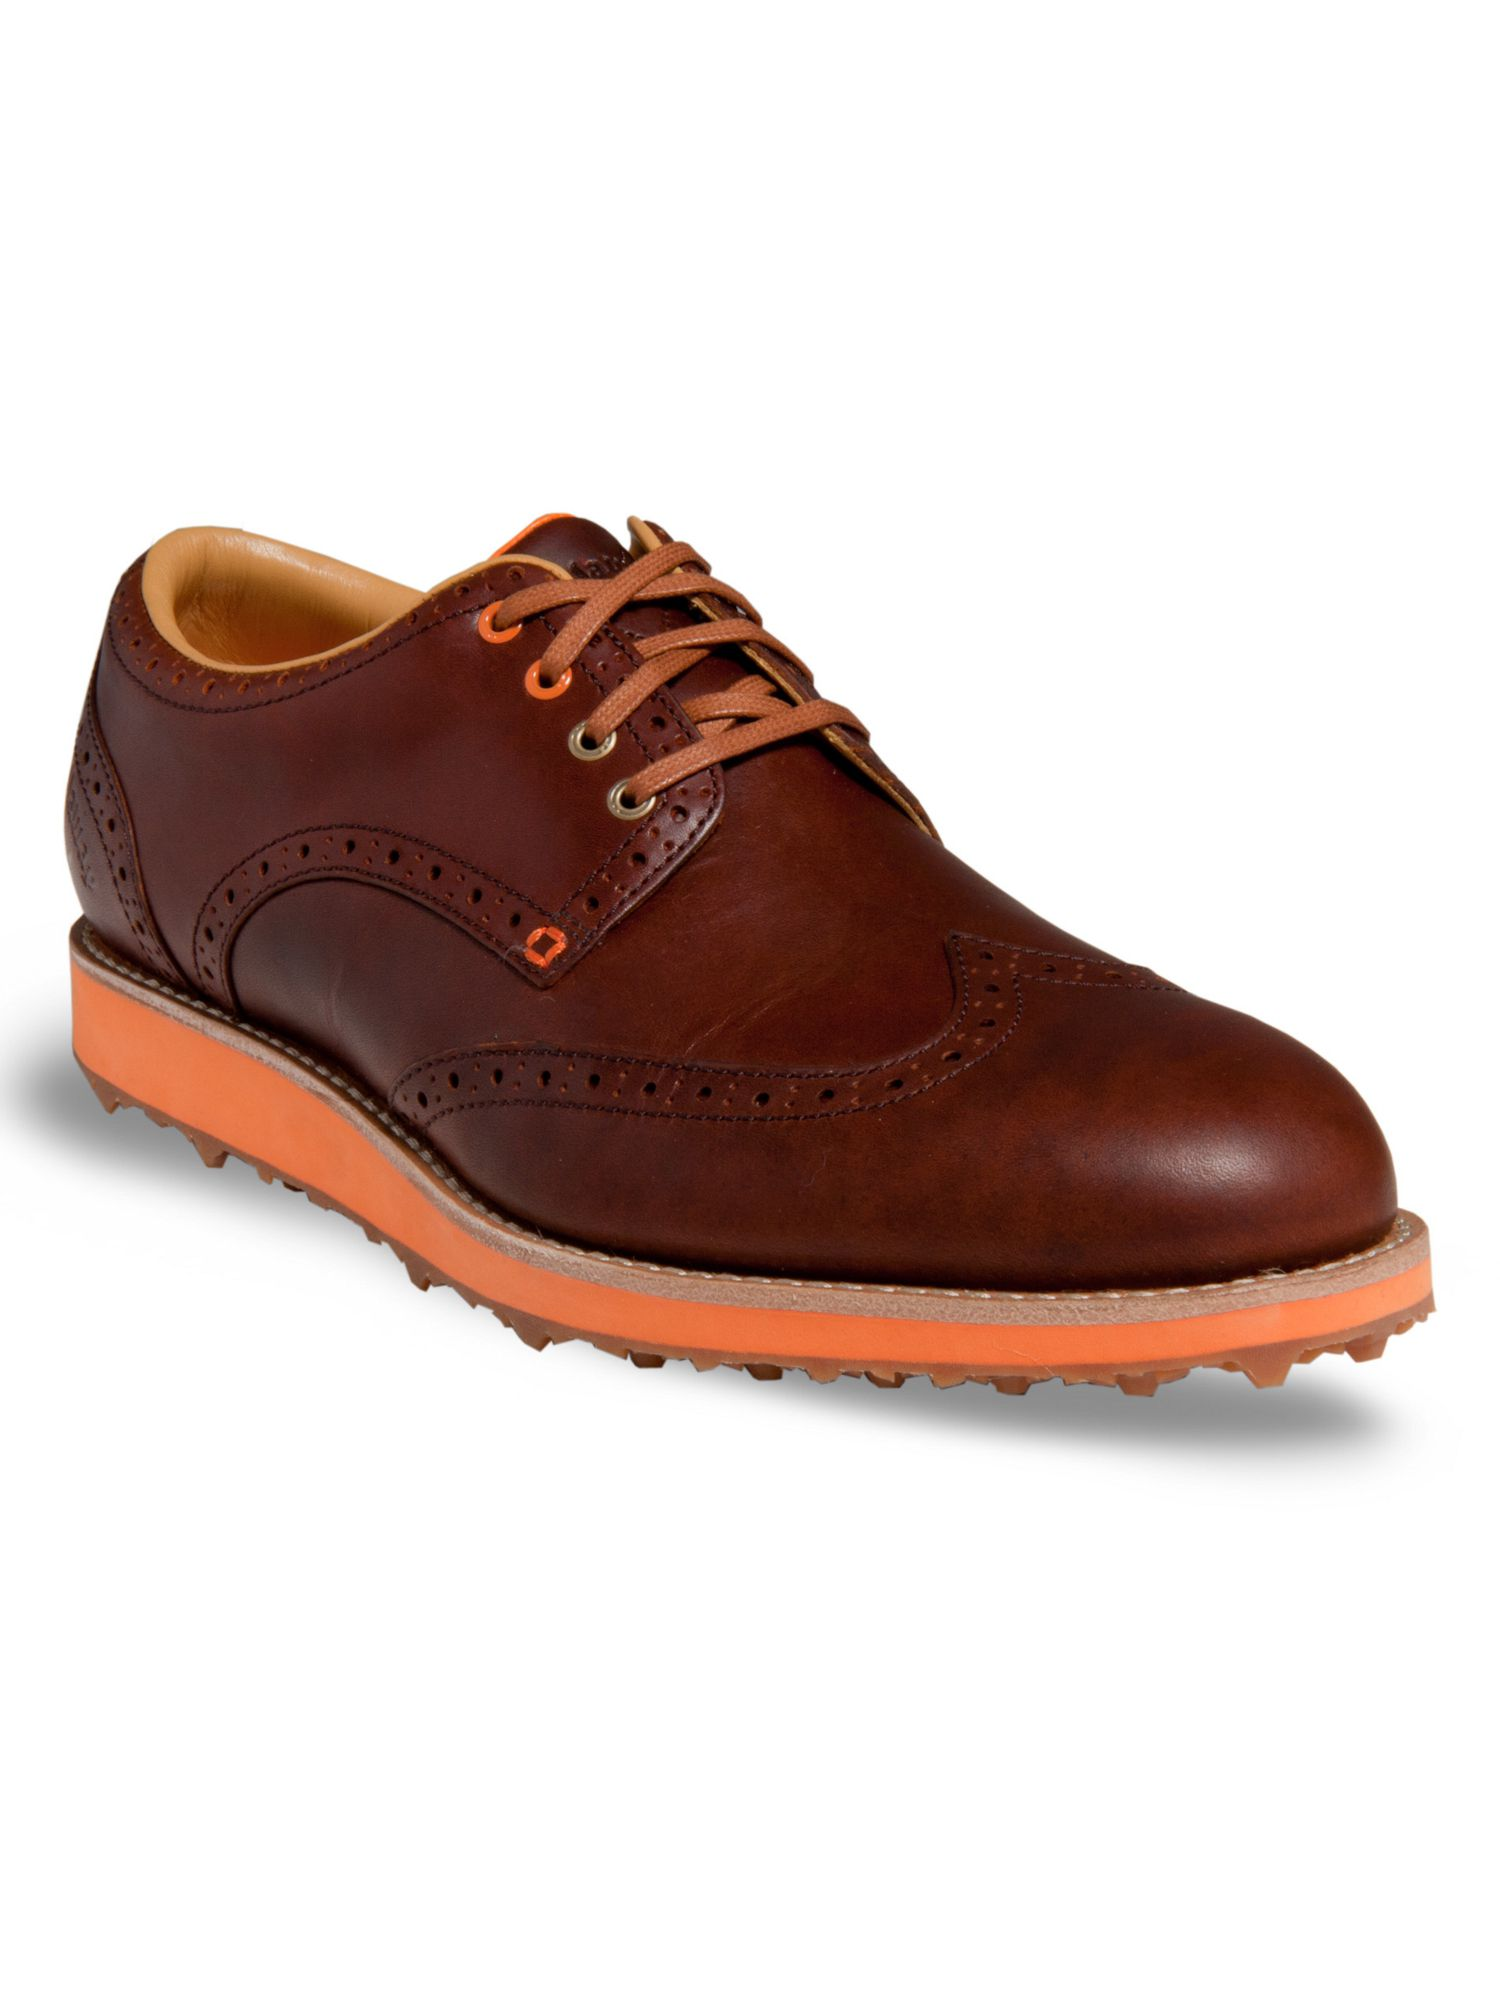 Master staff brogue golf shoes